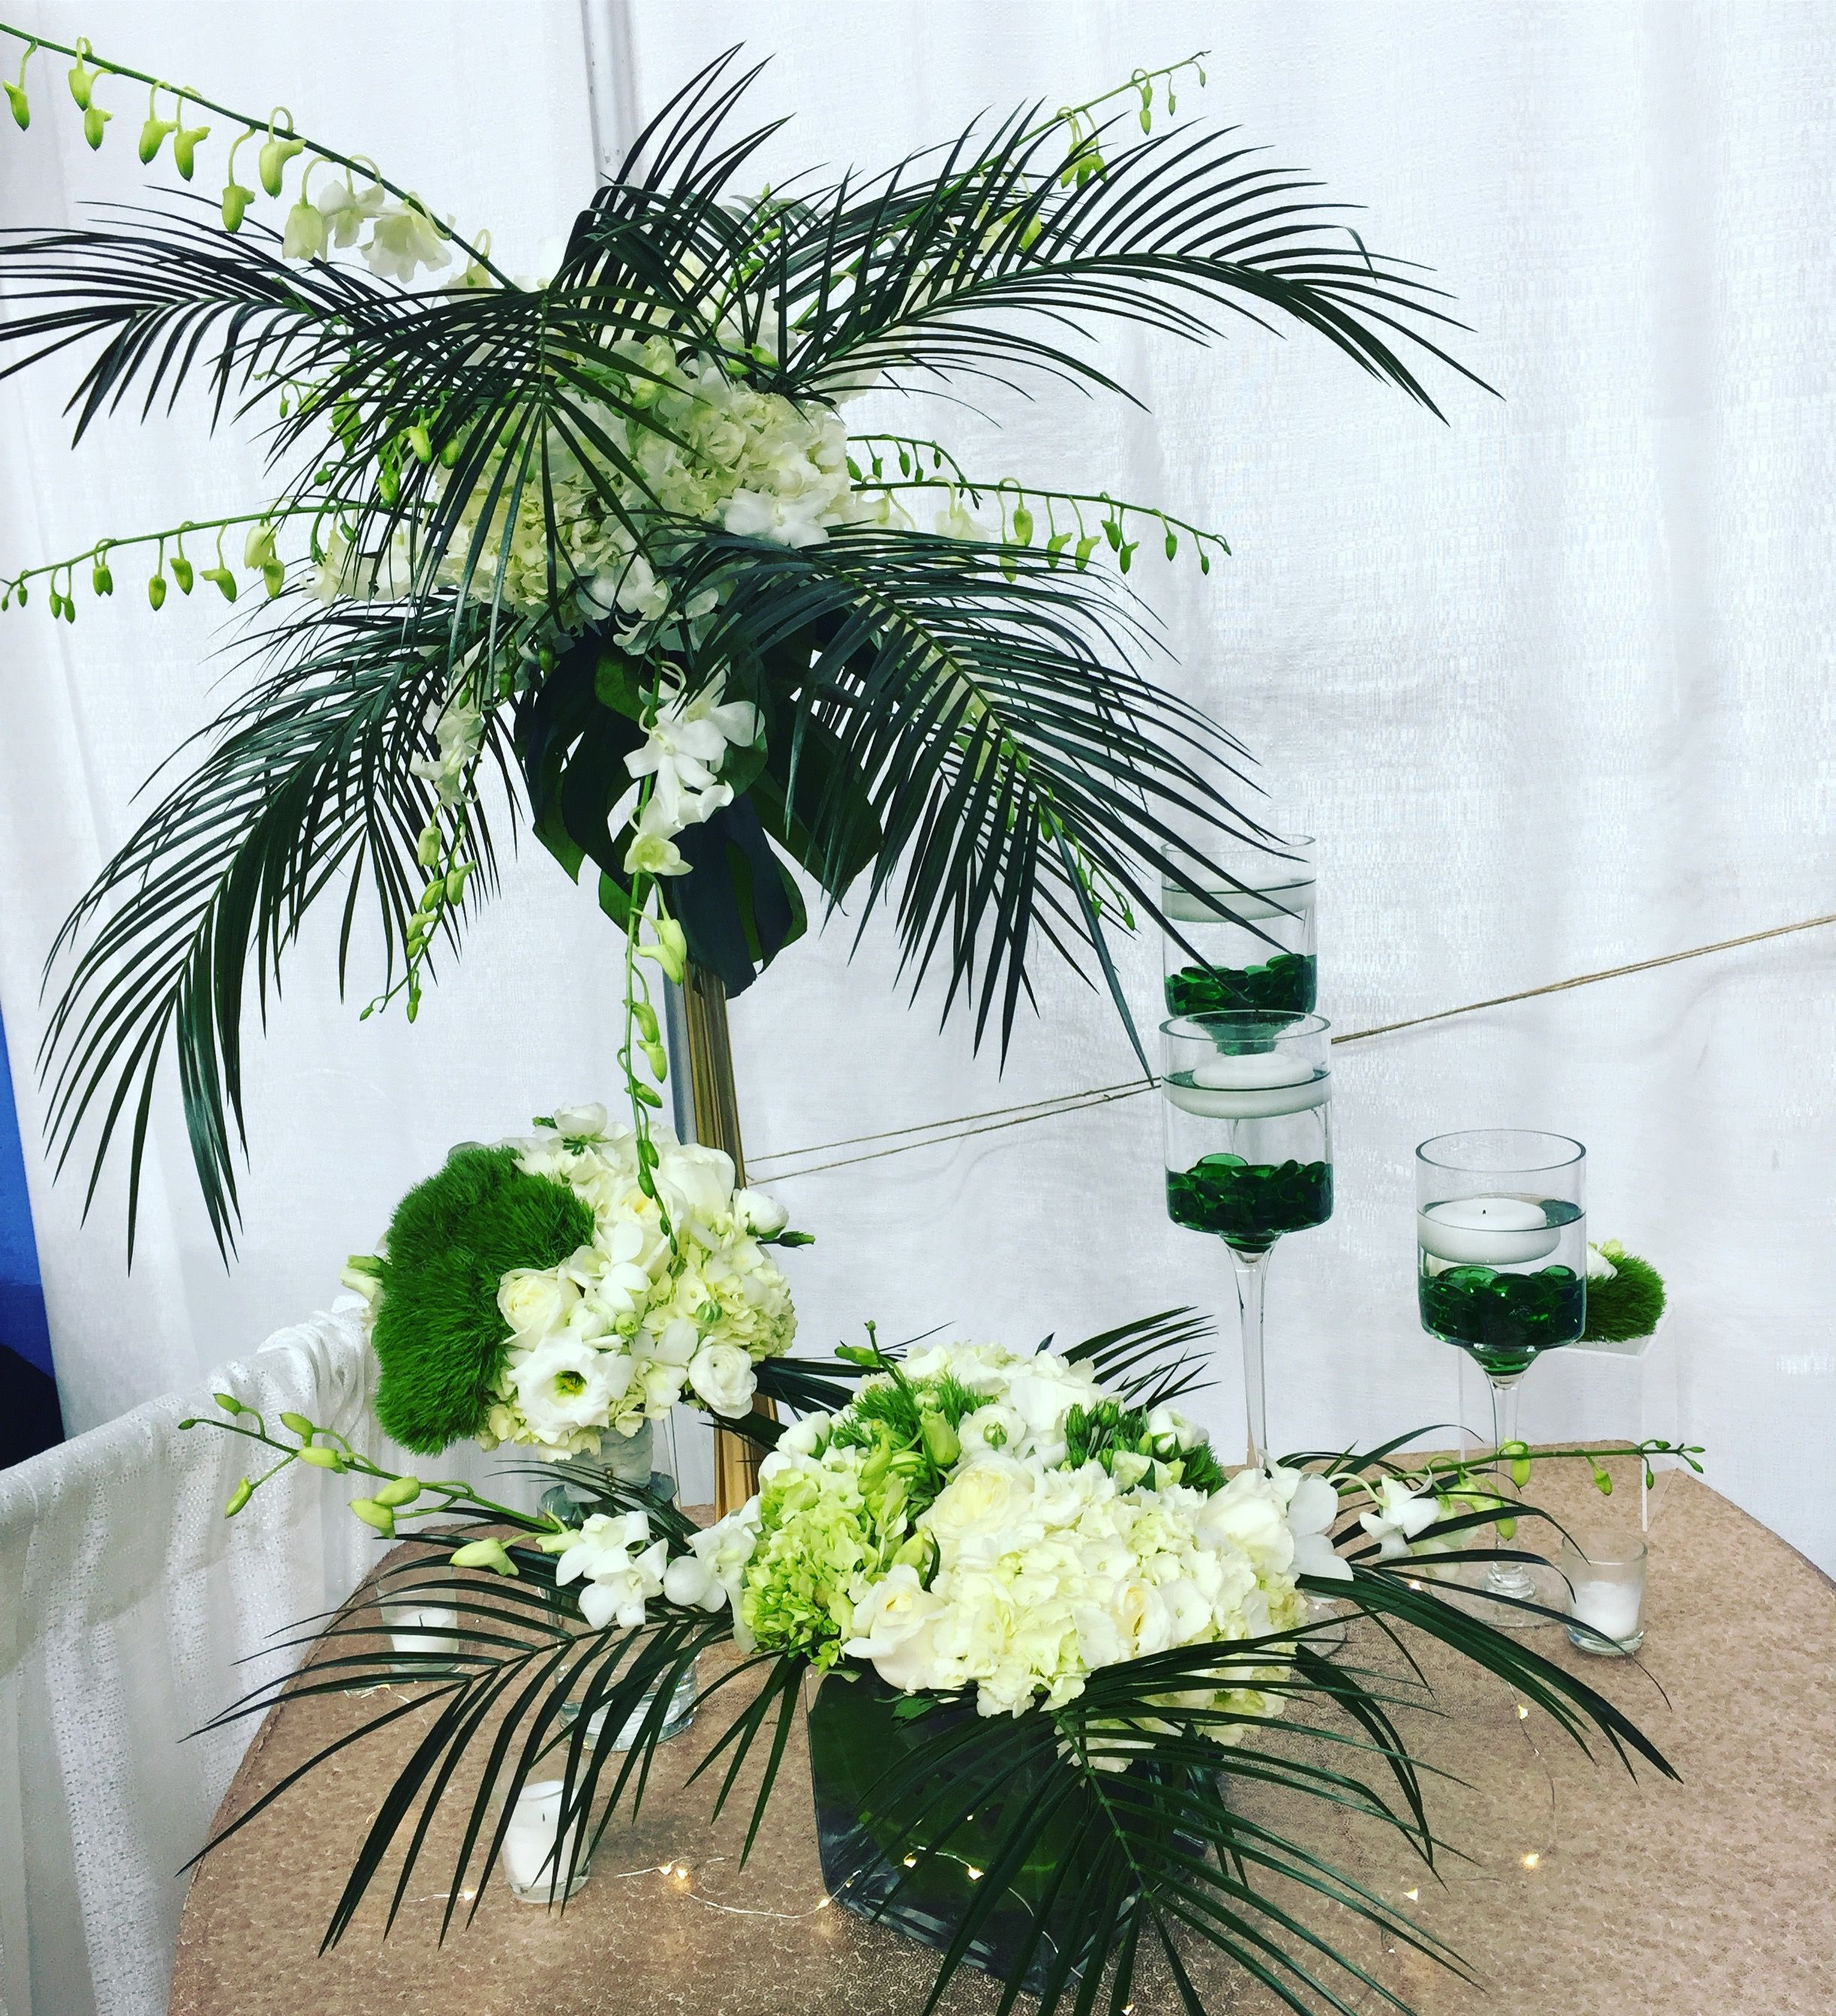 Flower vase kijiji - Centerpieces By Flowers Of The Forest Eiffel Tower Vase Gold With Palm Leaves Orchids